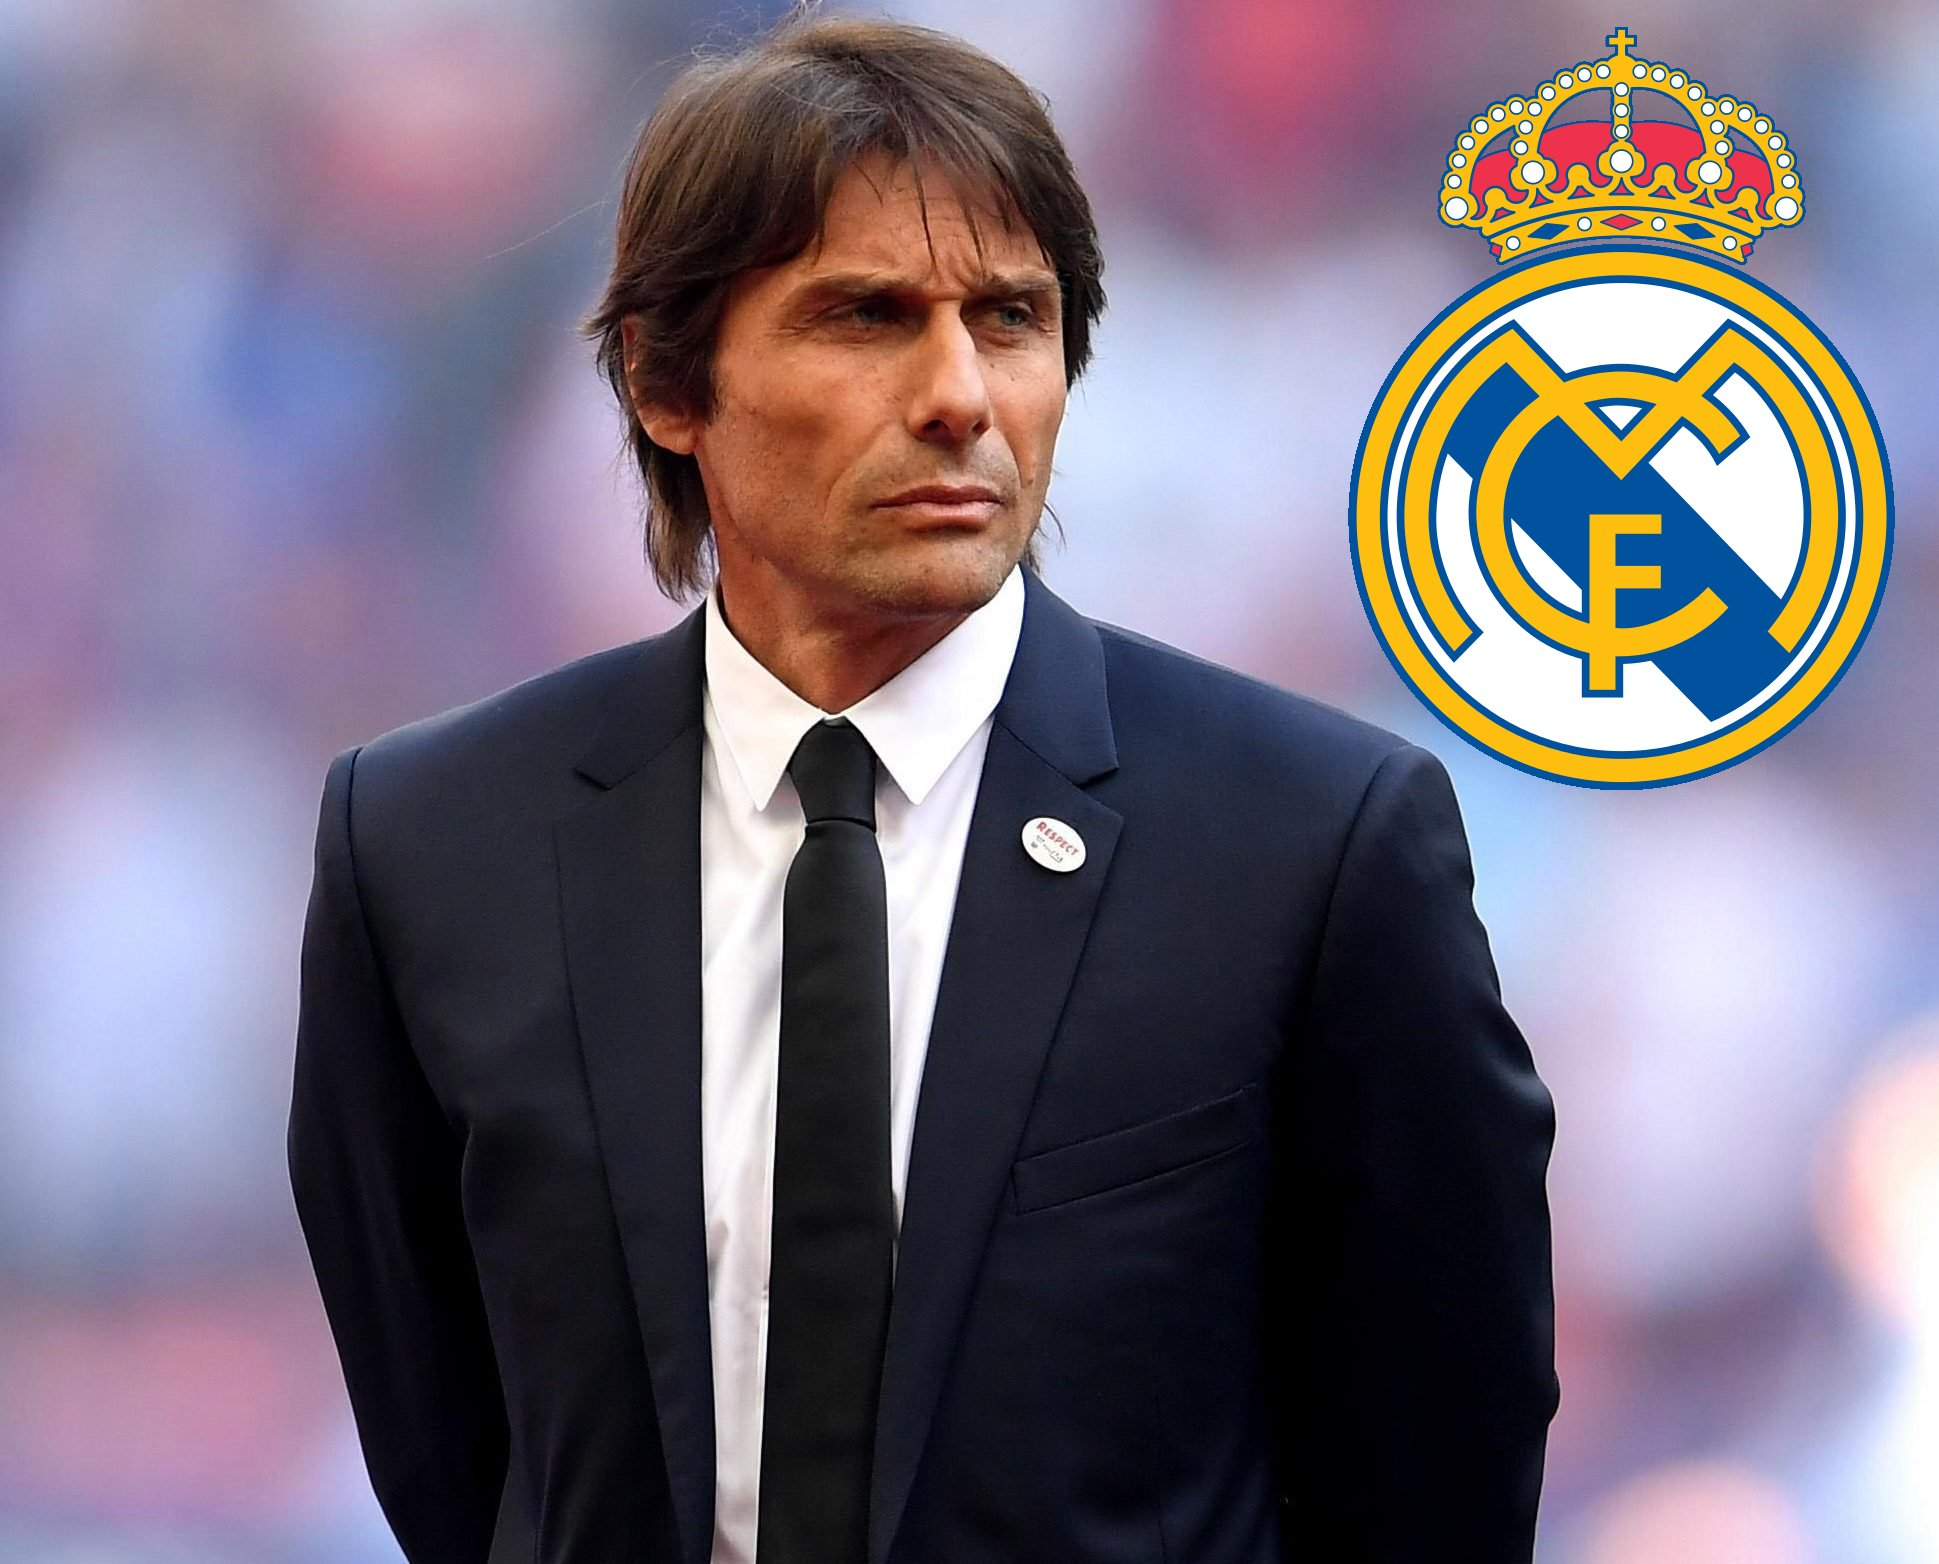 Conte Rules Out Taking Real Madrid Job